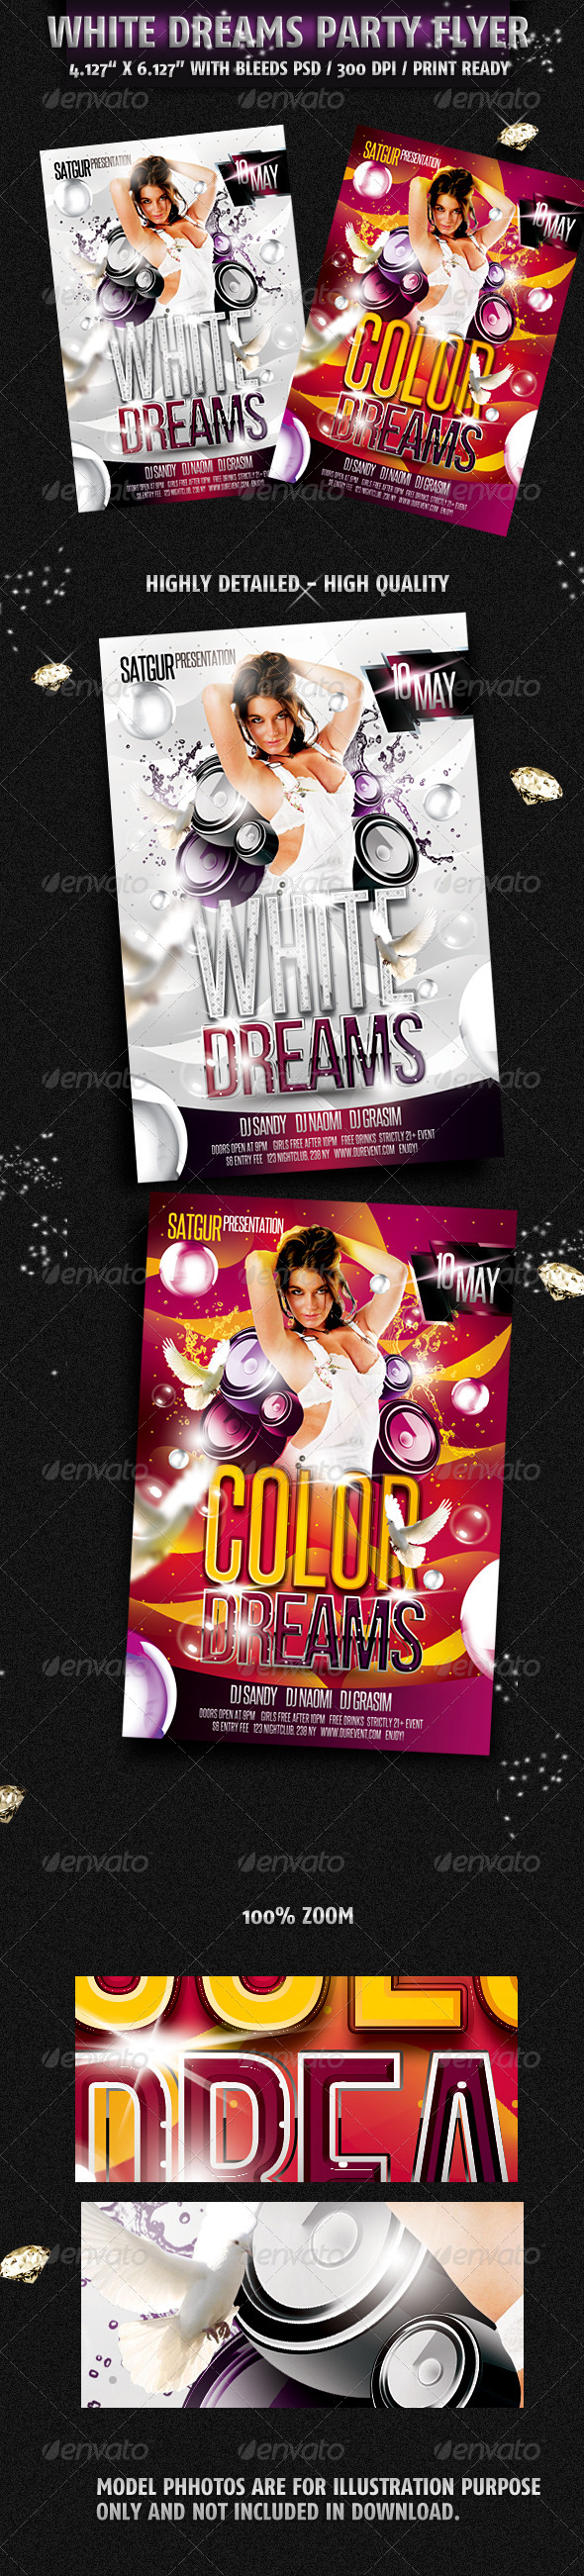 White Dreams Party Flyer - Flyers Print Templates